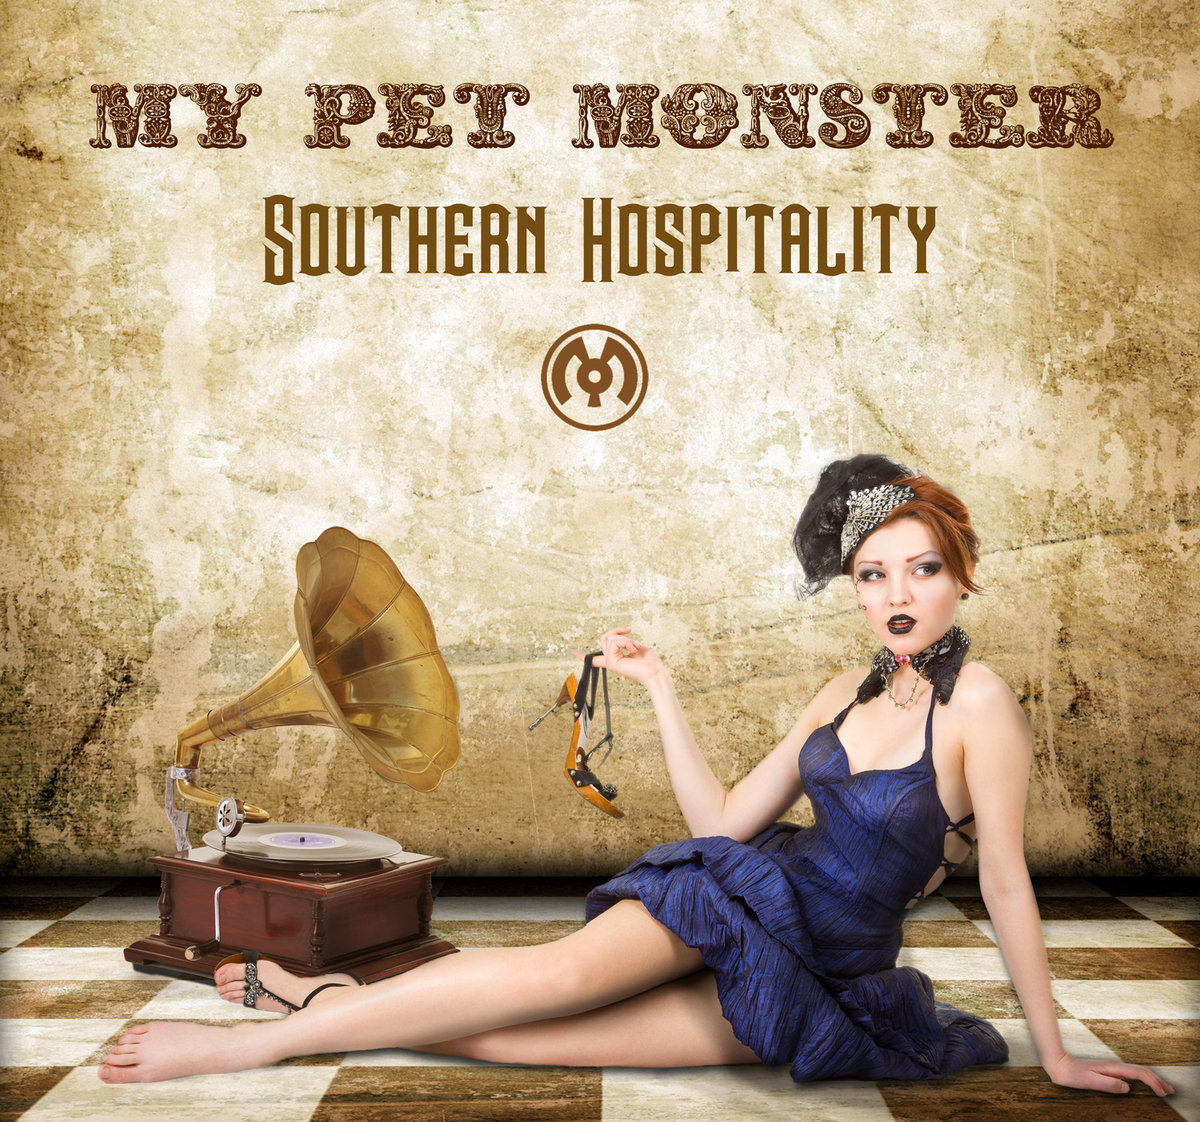 My Pet Monster - Southern Hospitality (Defunk Remix) @ 'Southern Hospitality' album (electronic, dubstep)